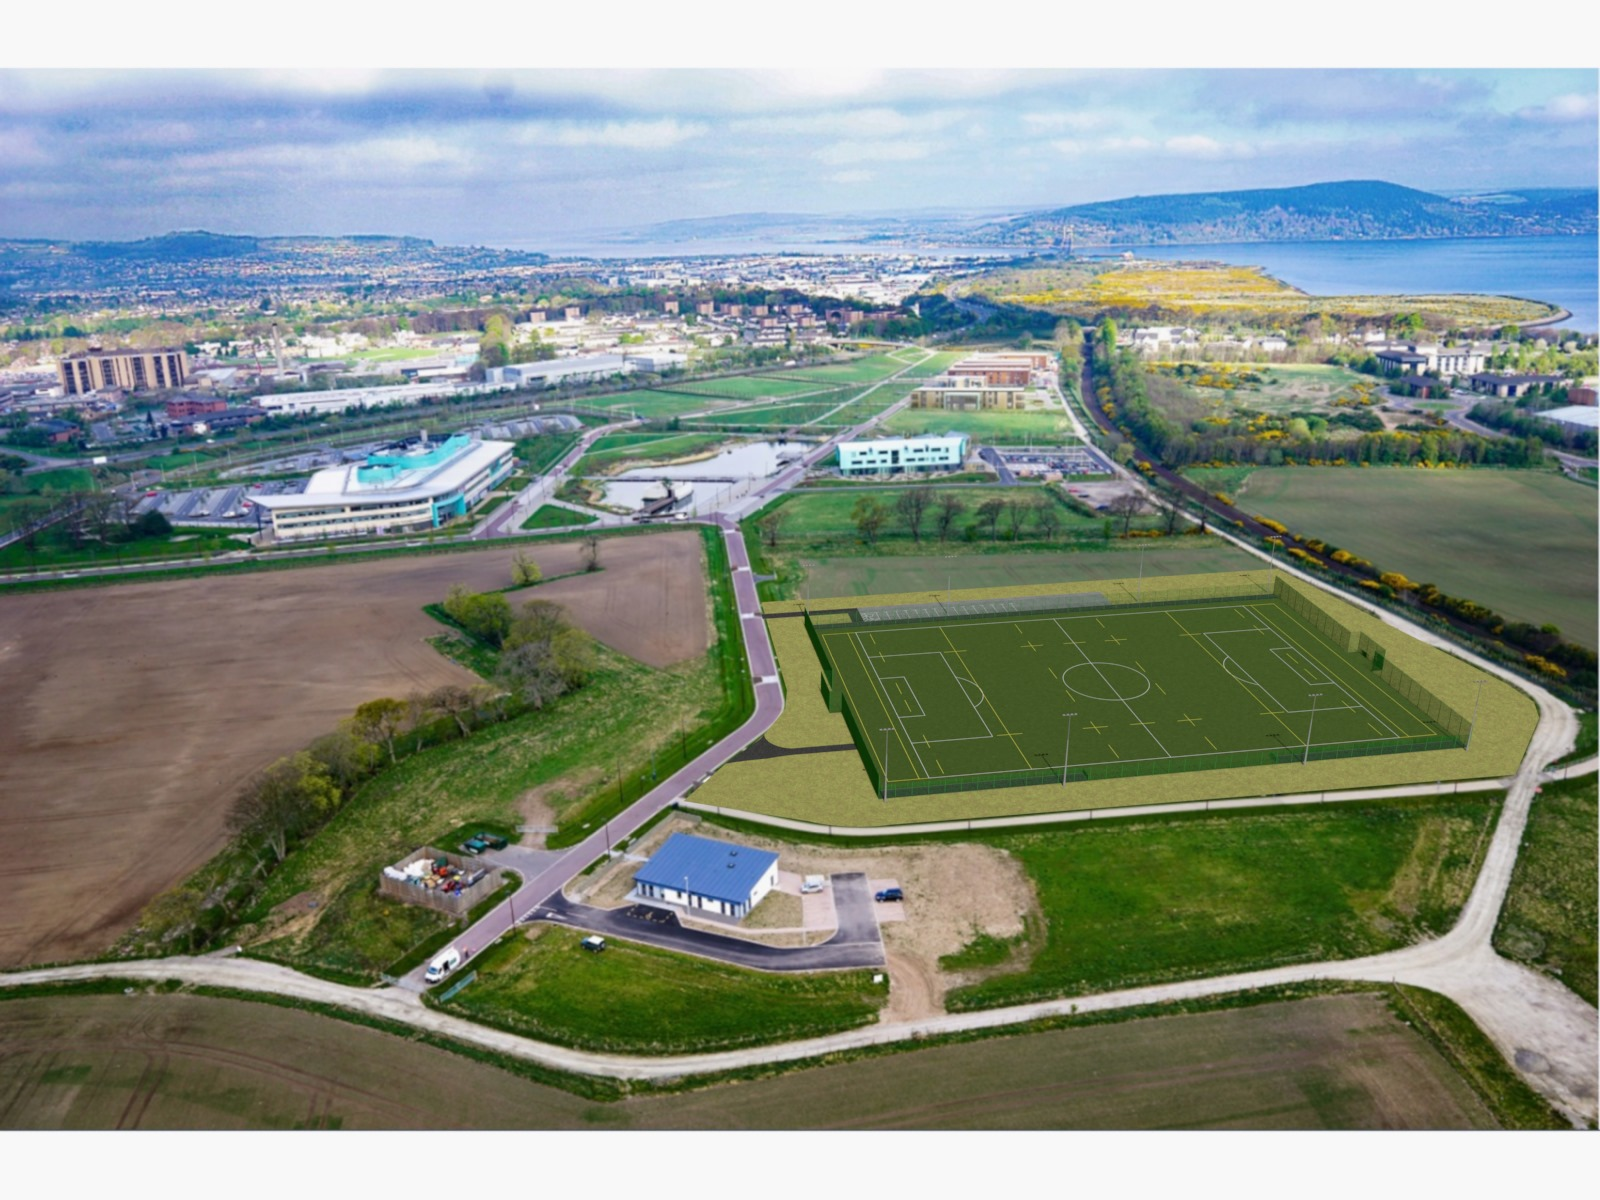 Funding secured for an all-weather sports pitch at Inverness Campus